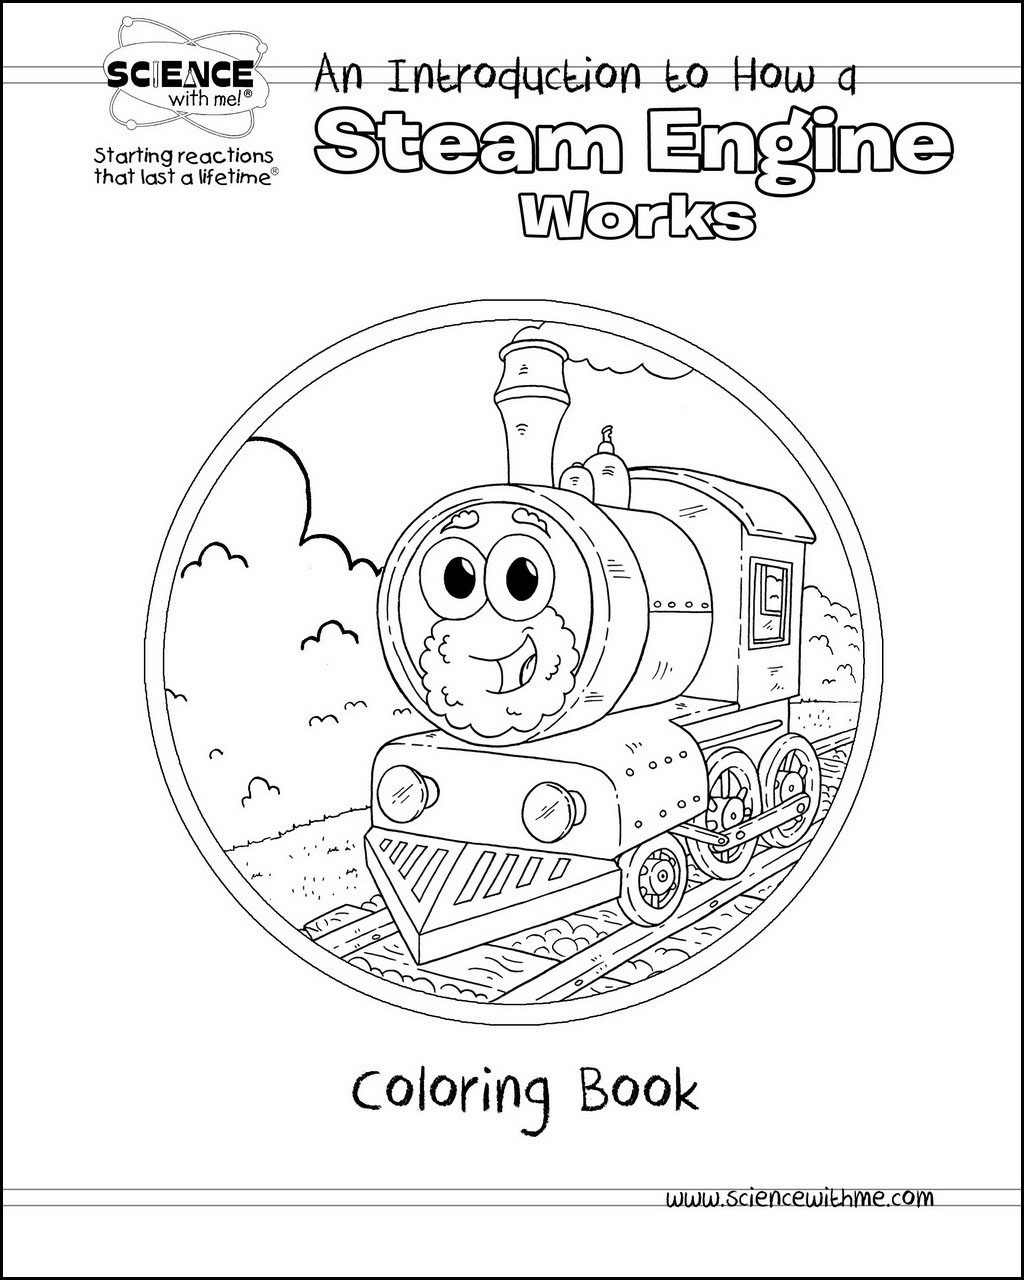 Steam Engine Coloring Book